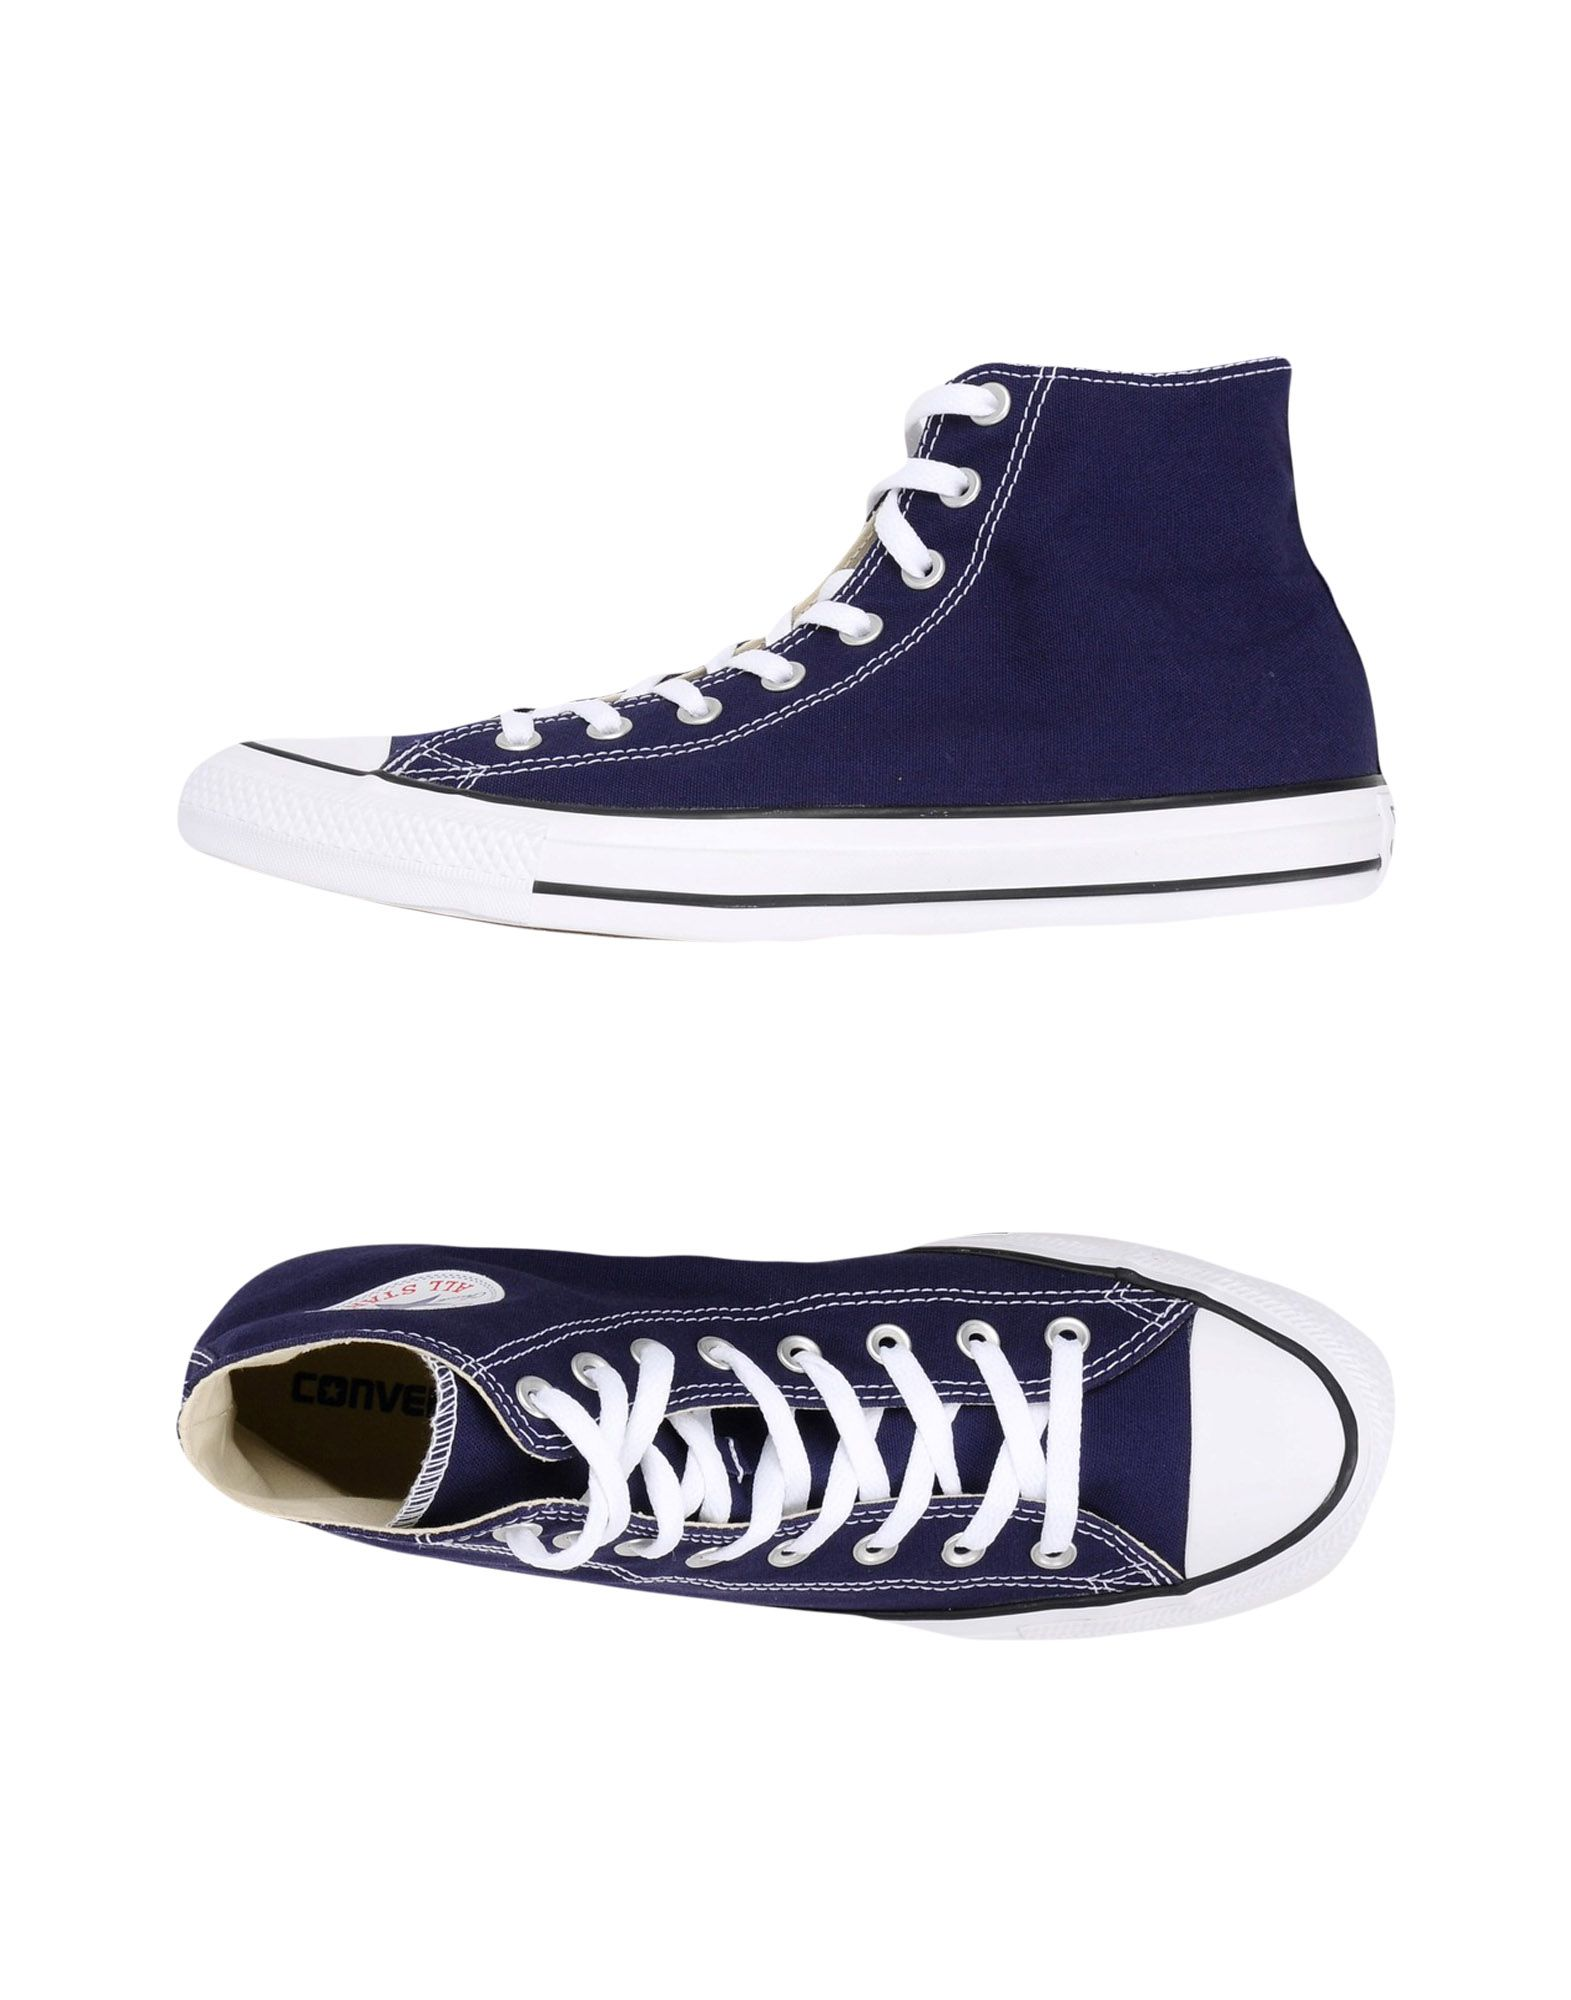 Sneakers Converse All Star Ct As Hi Canvas Seasonal - Uomo - 11335951NC